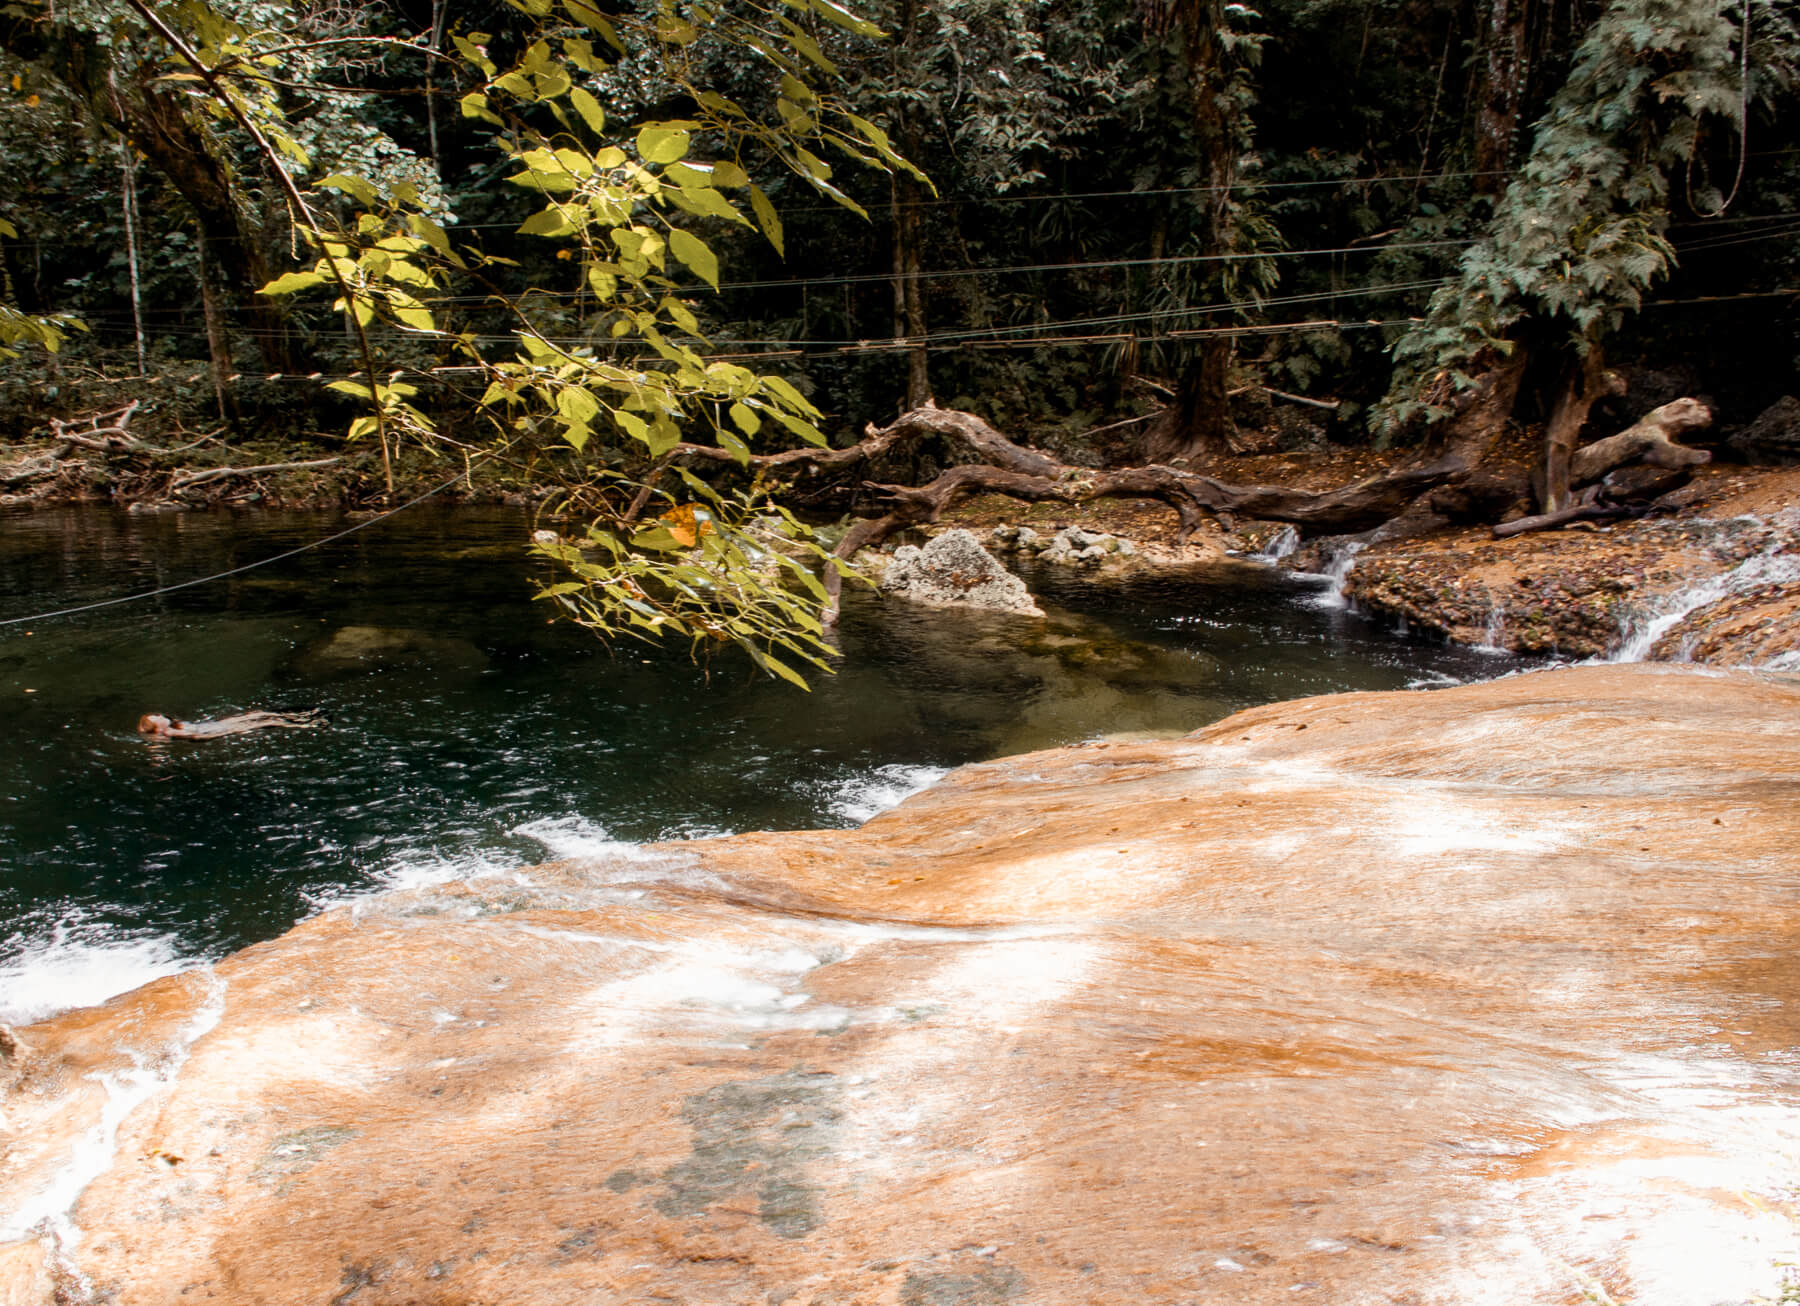 A girl laying on her back in the water of a forest swimming hole - Eden on the River